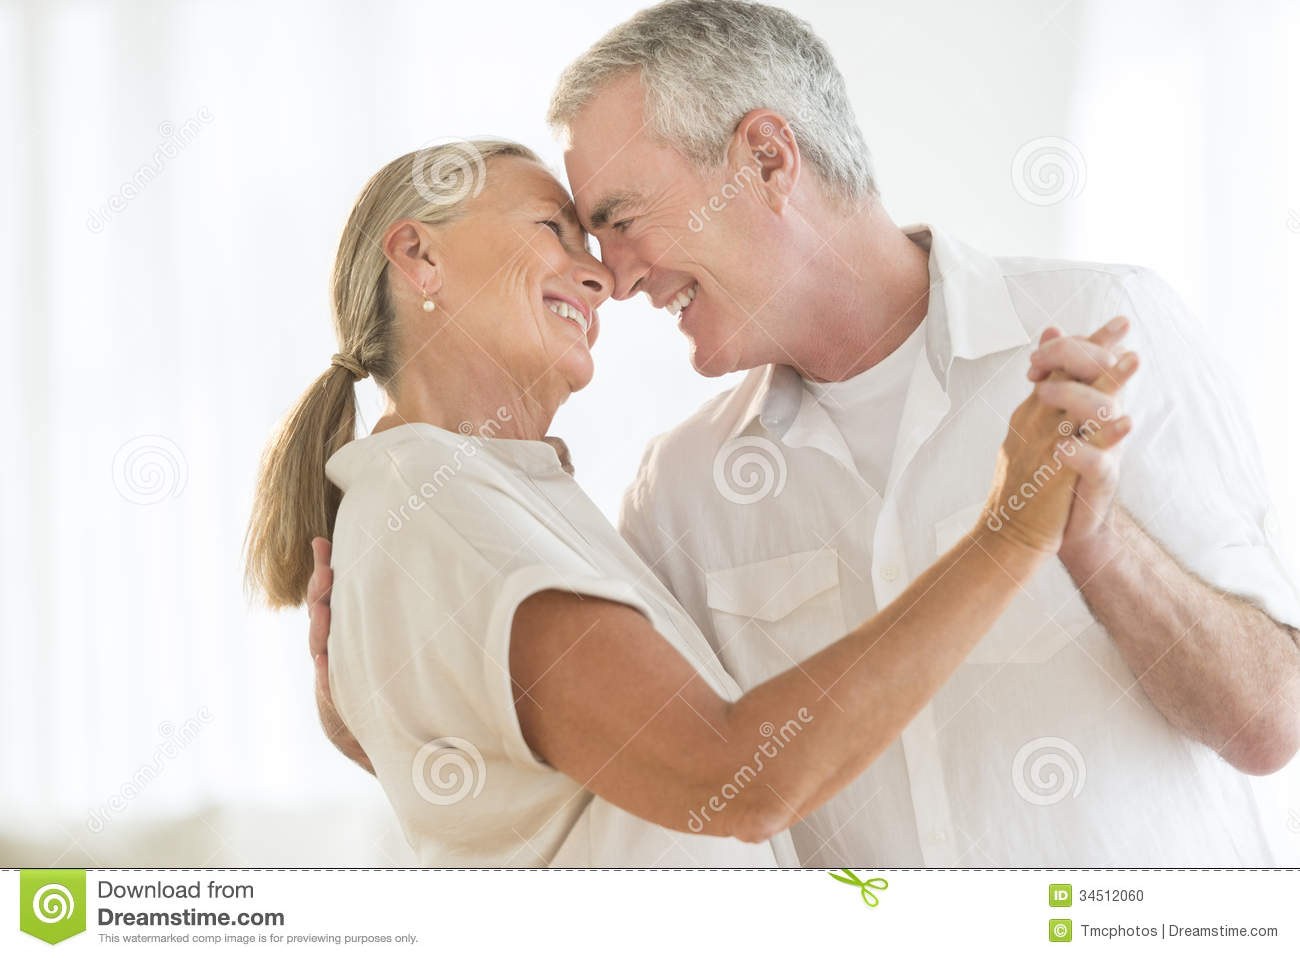 Growing Older Gracefully Quotes moreover Stock Photo Romantic Couple Dancing Home Senior Image34512060 furthermore wingfieldschooldance co further Doh Stunned Couple Unearth 800 Year Old Stone Head Garden Looks Like HOMER SIMPSON furthermore Jona In De Walvis. on old cartoon church